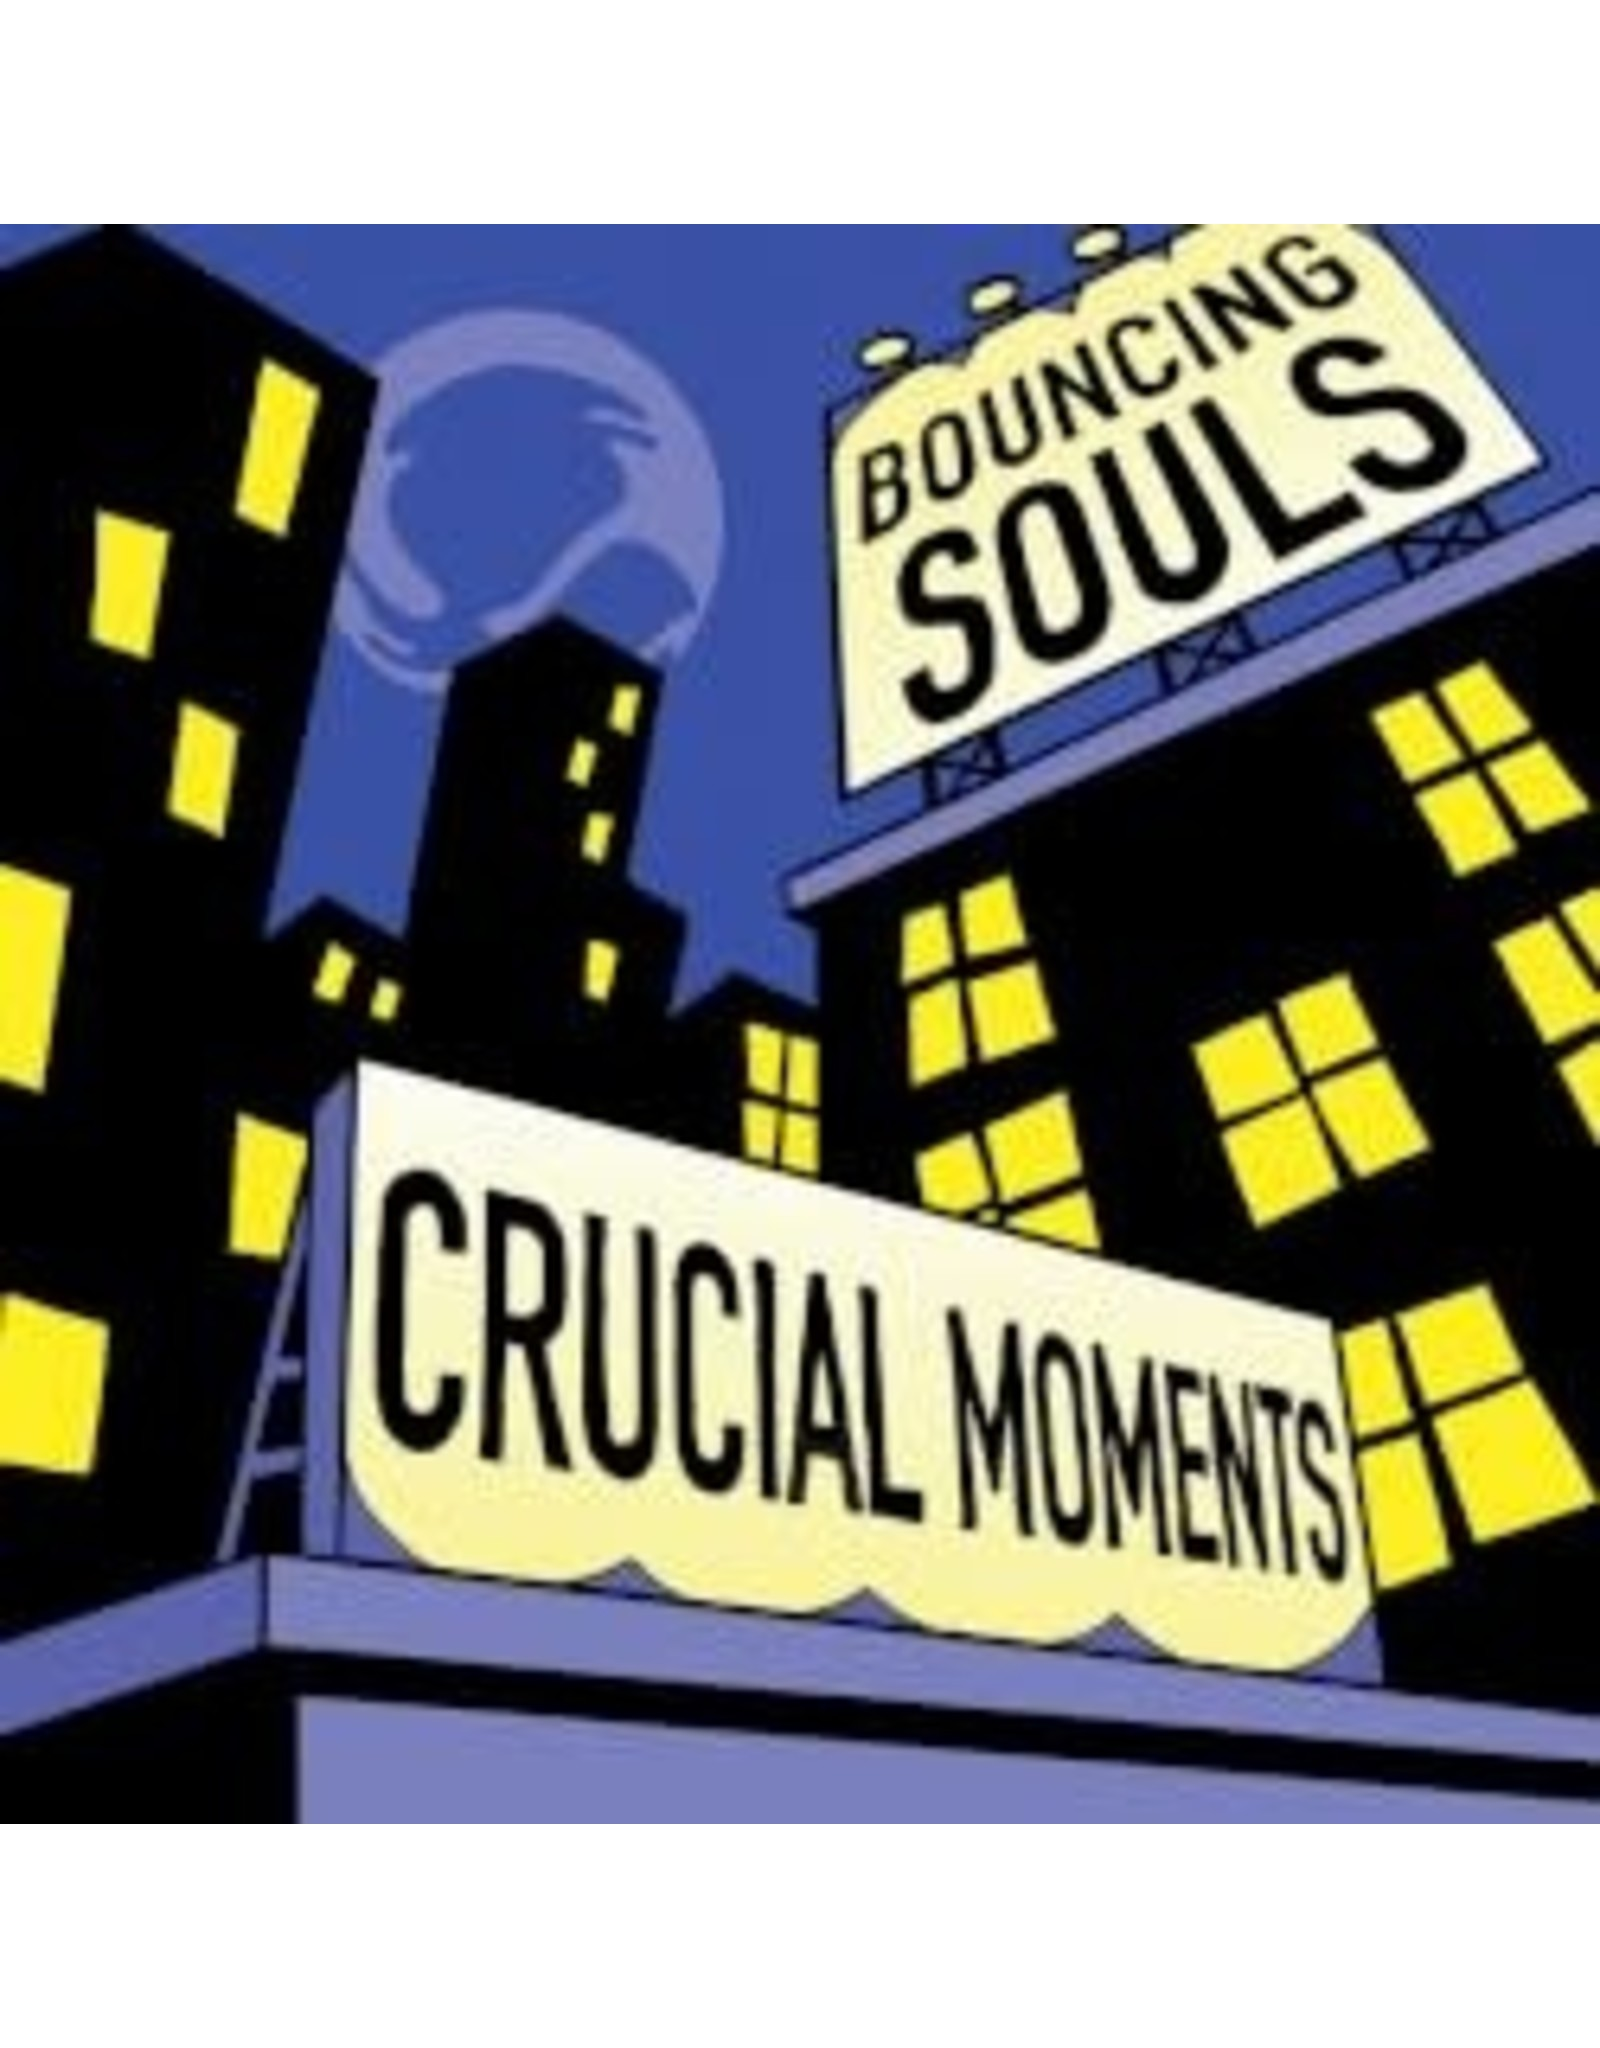 Bouncing Sould - Crucial Moments EP LP